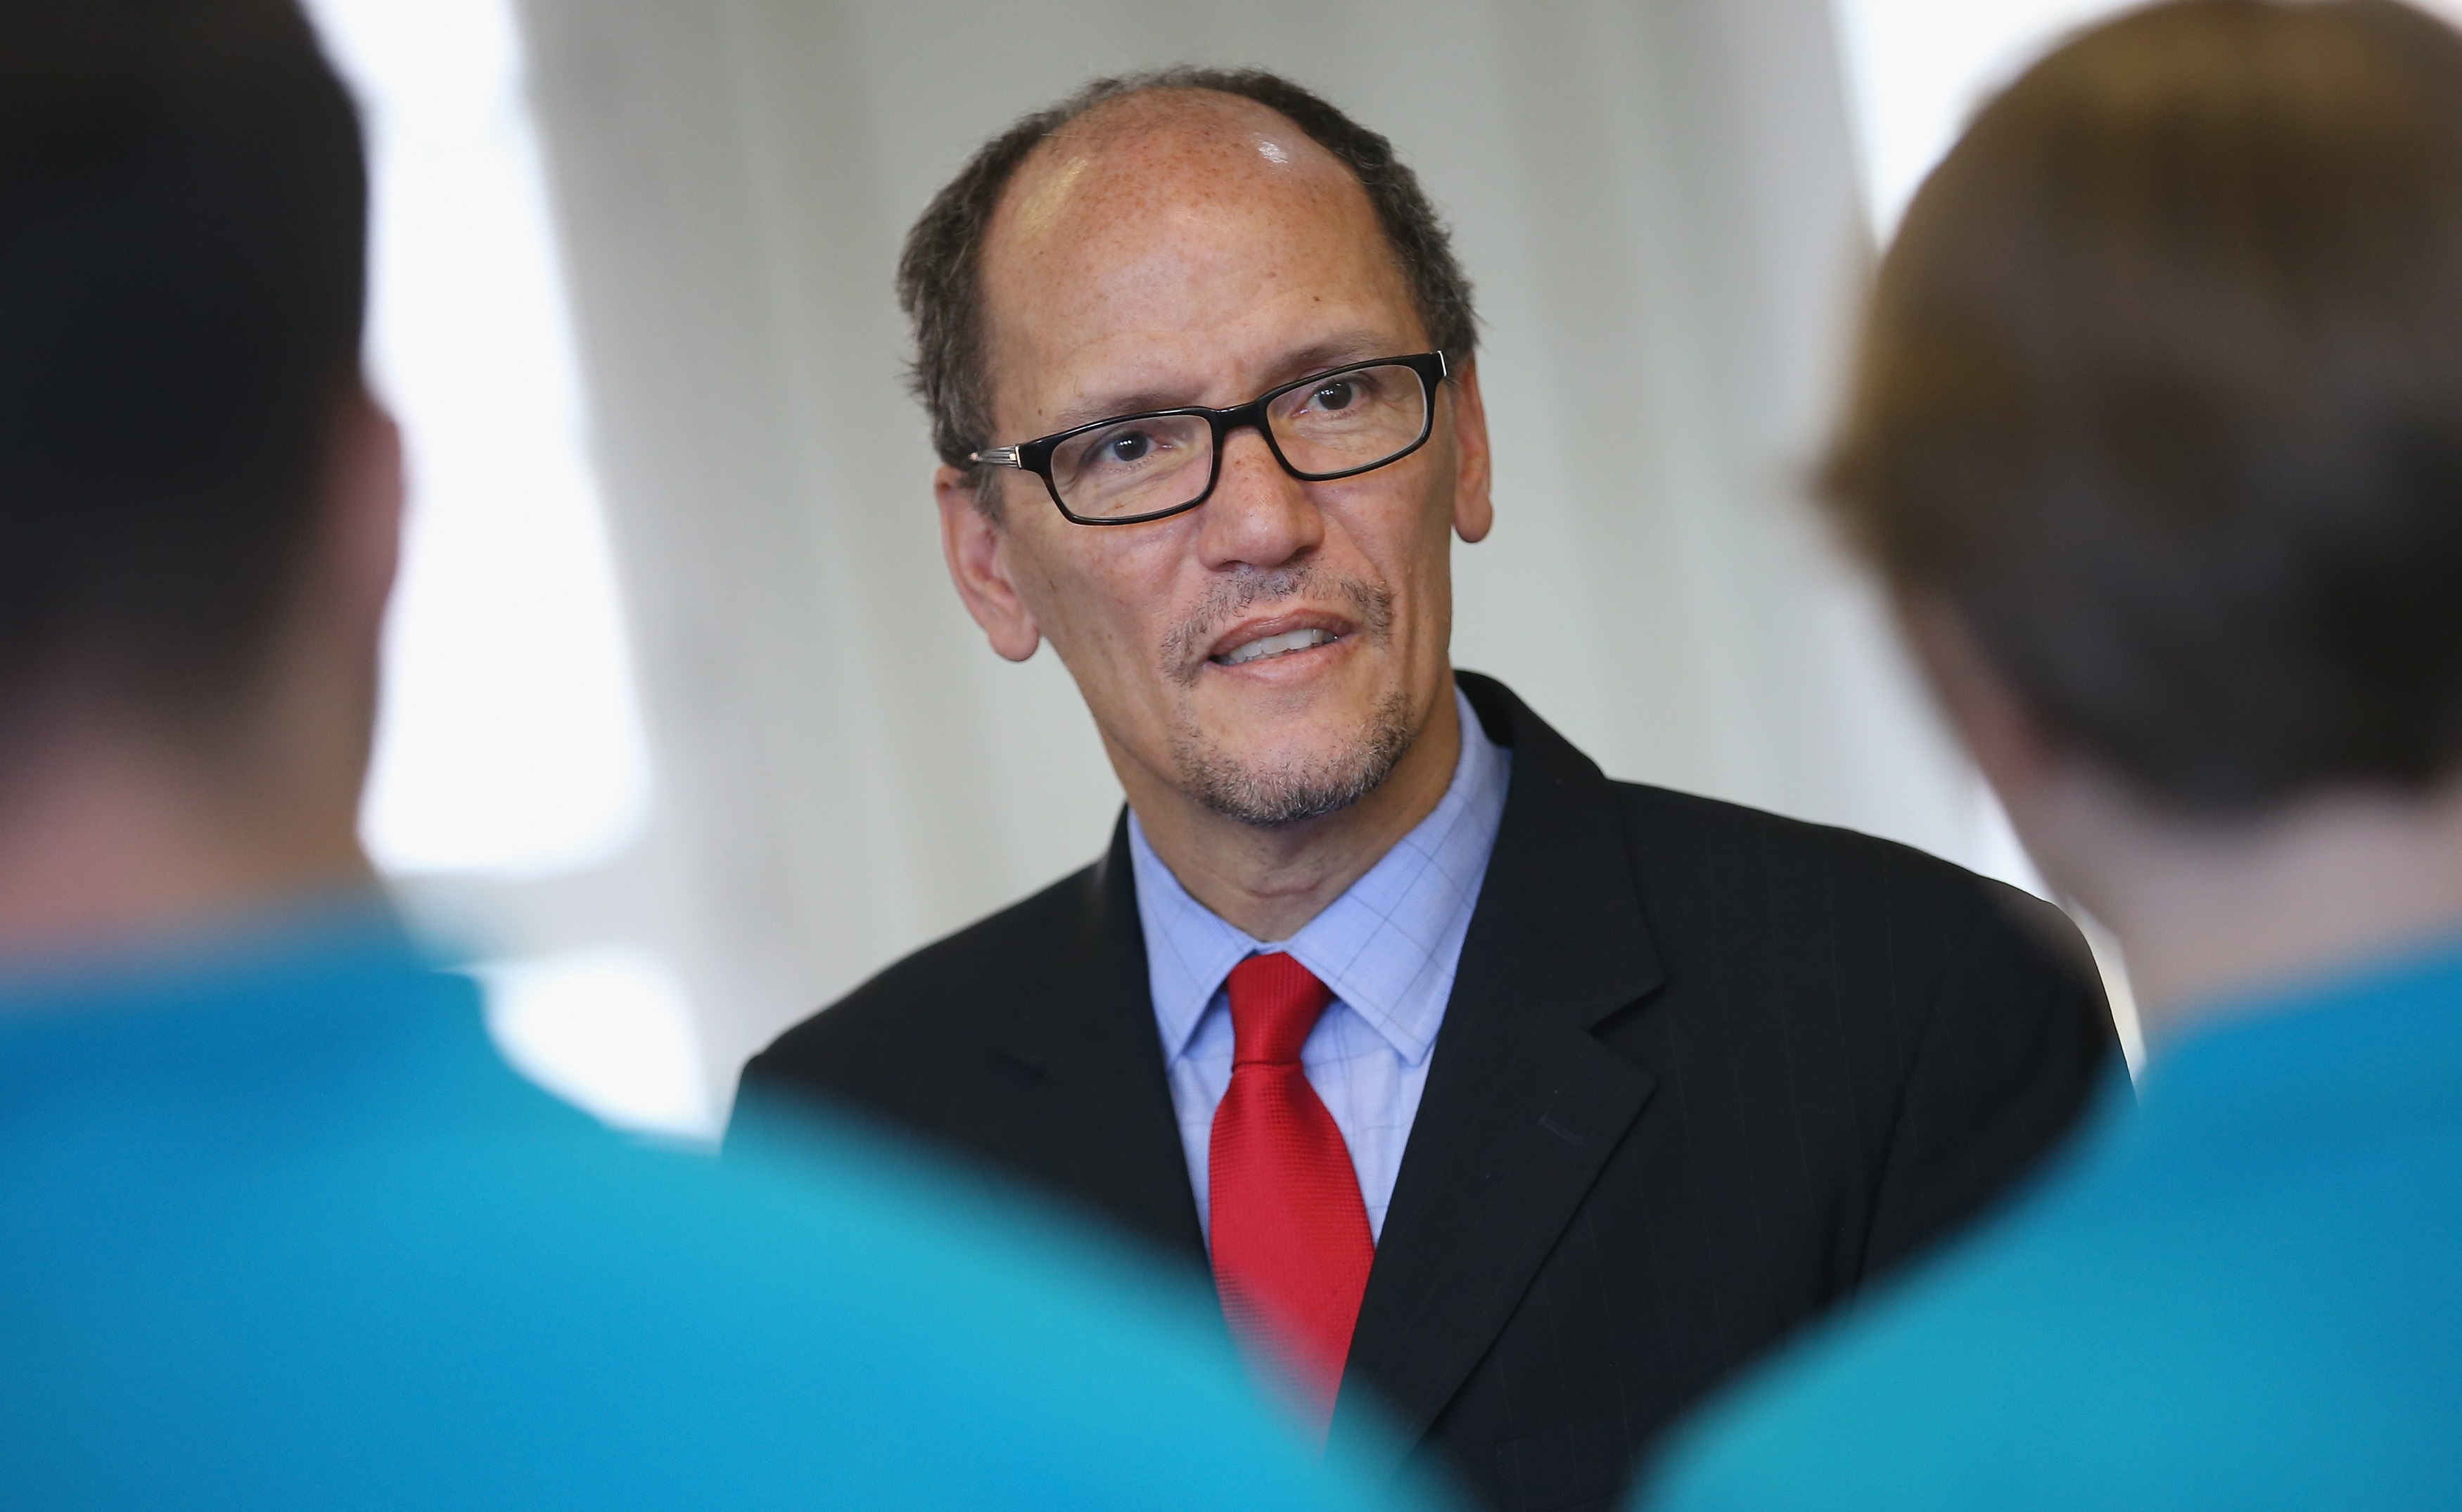 Former U.S. Labor Secretary Thomas E. Perez speaks to supporters of his bid for Democratic National Committee chairman in Baltimore on Saturday. (Getty Images file photo)